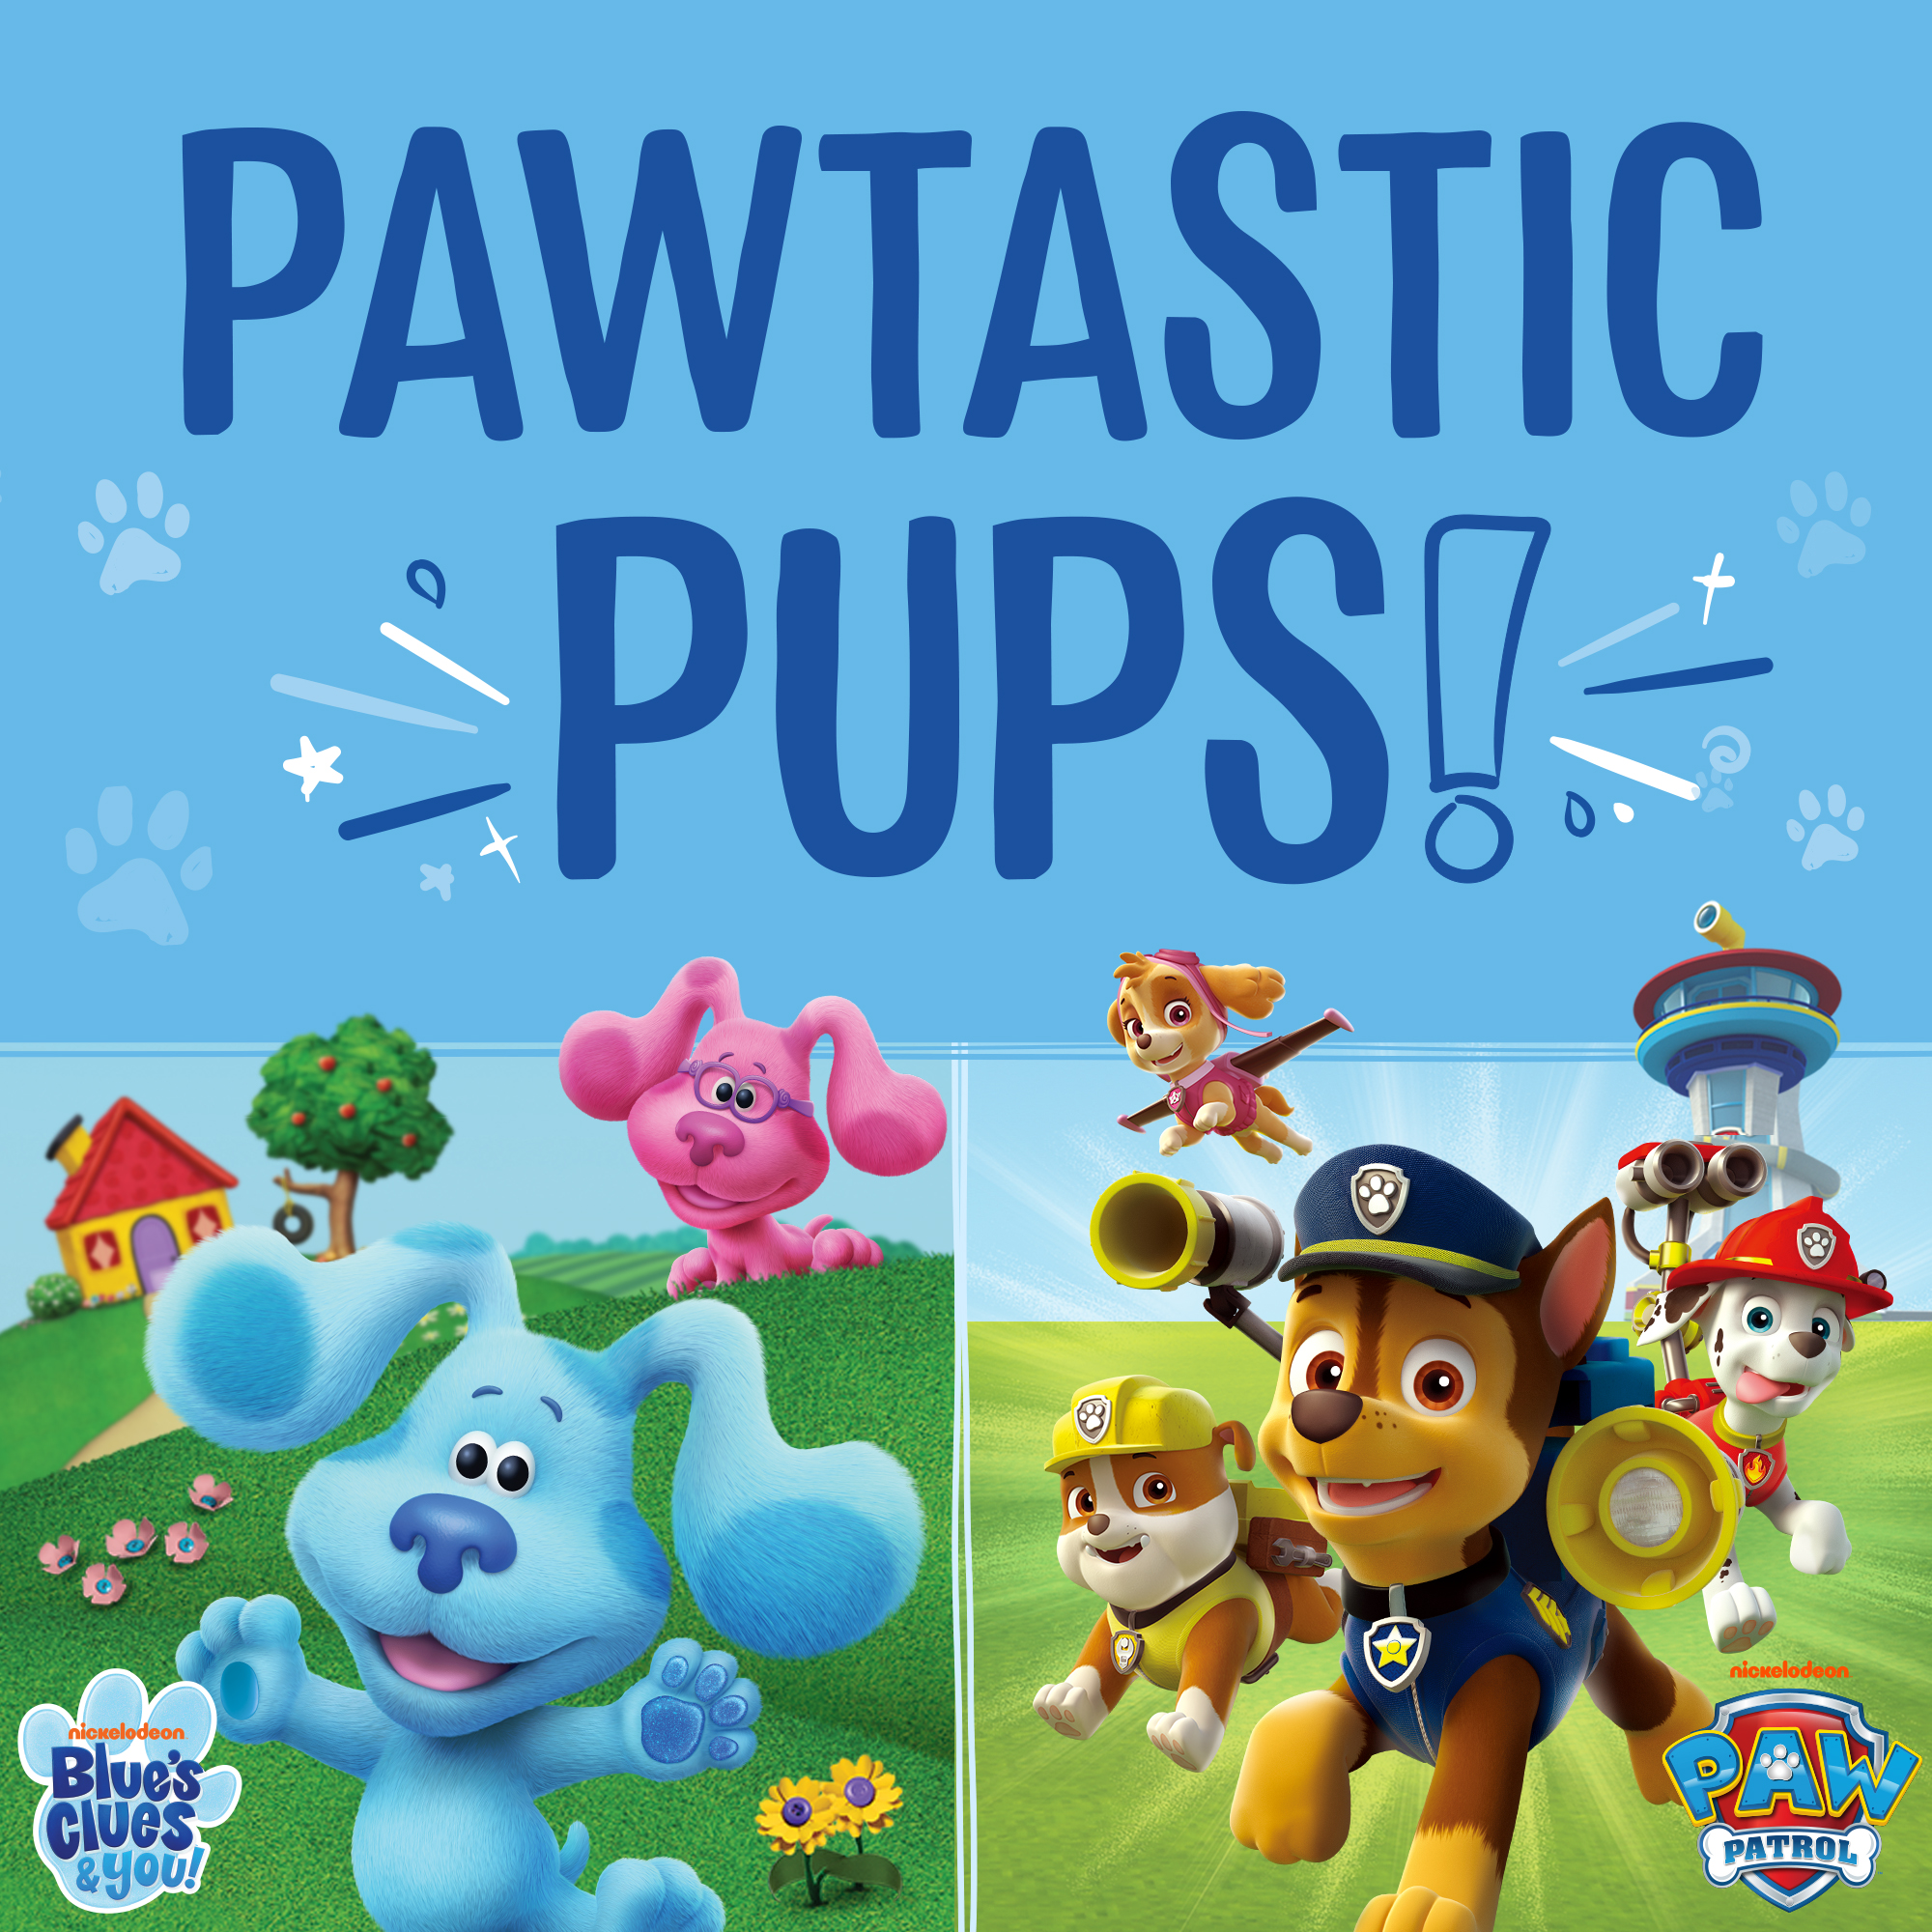 SNEAK PEEK: New PAW Patrol™ and <i>Blue's Clues & You! </i>Toys Coming Soon